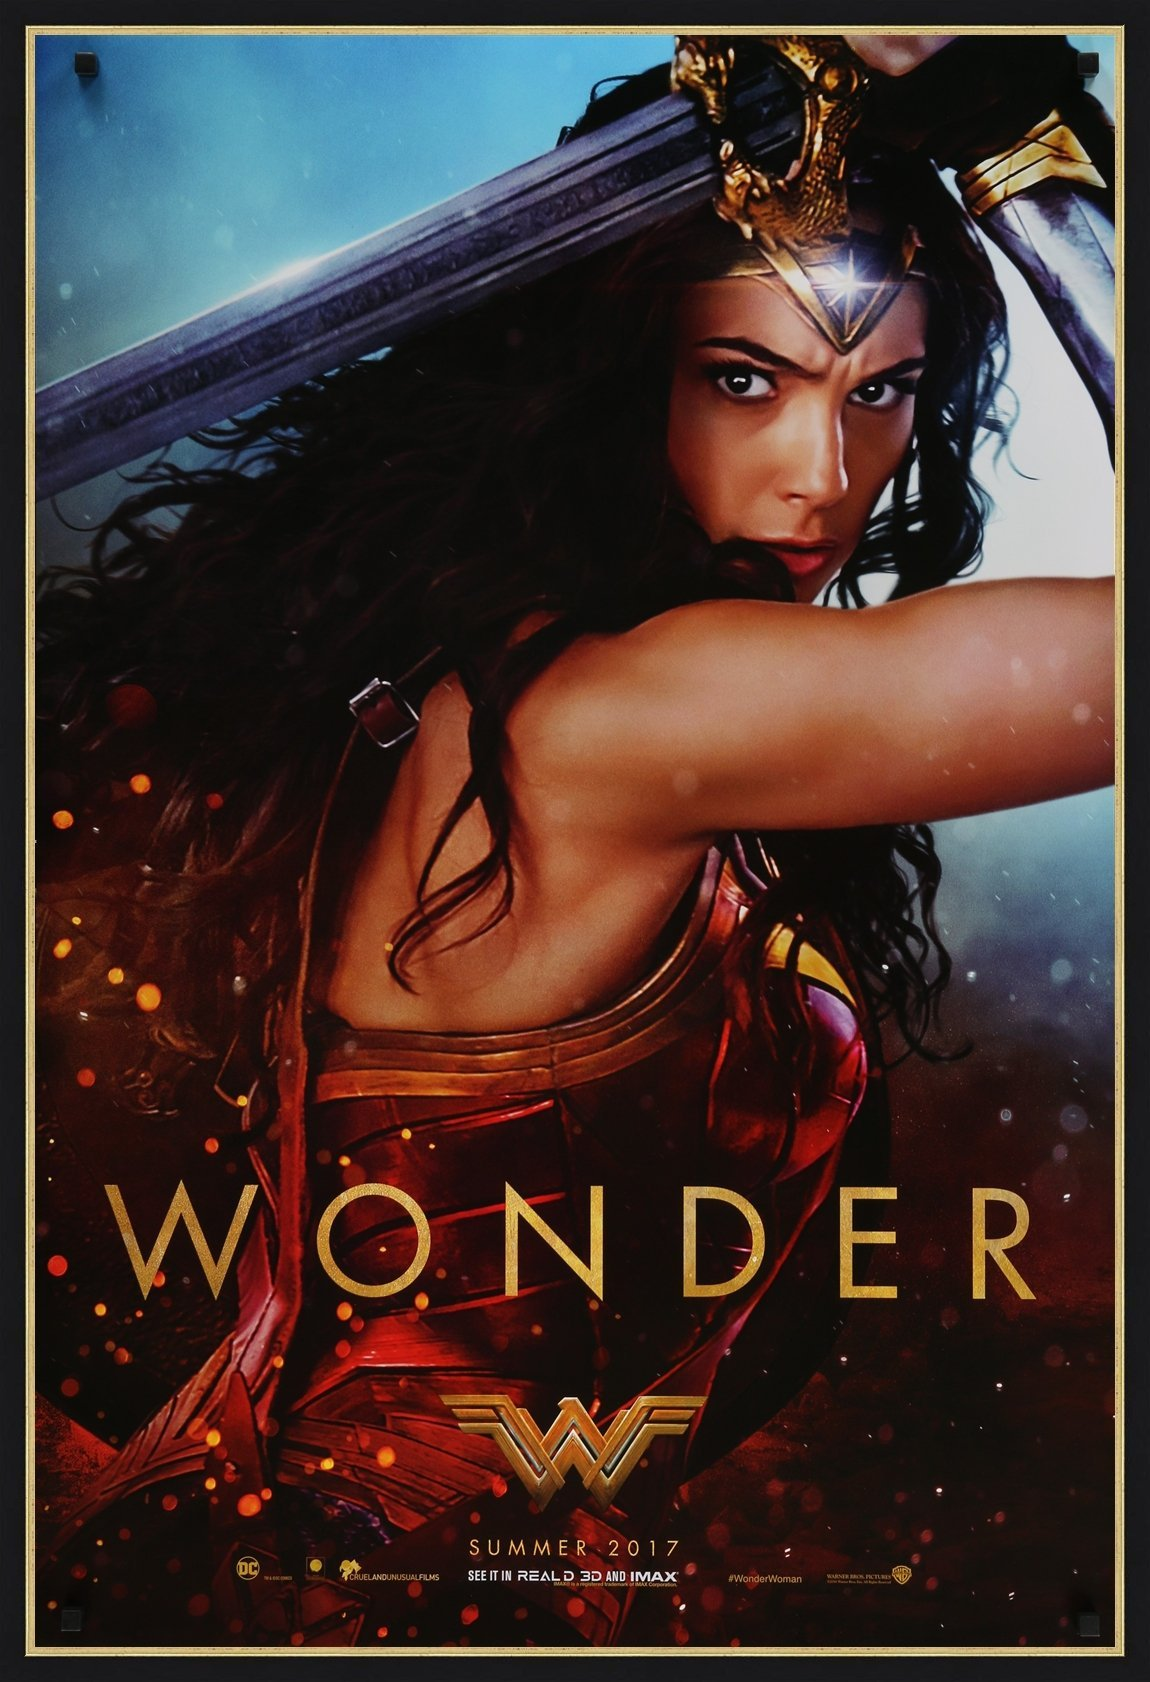 An original movie poster for the film Wonder Woman